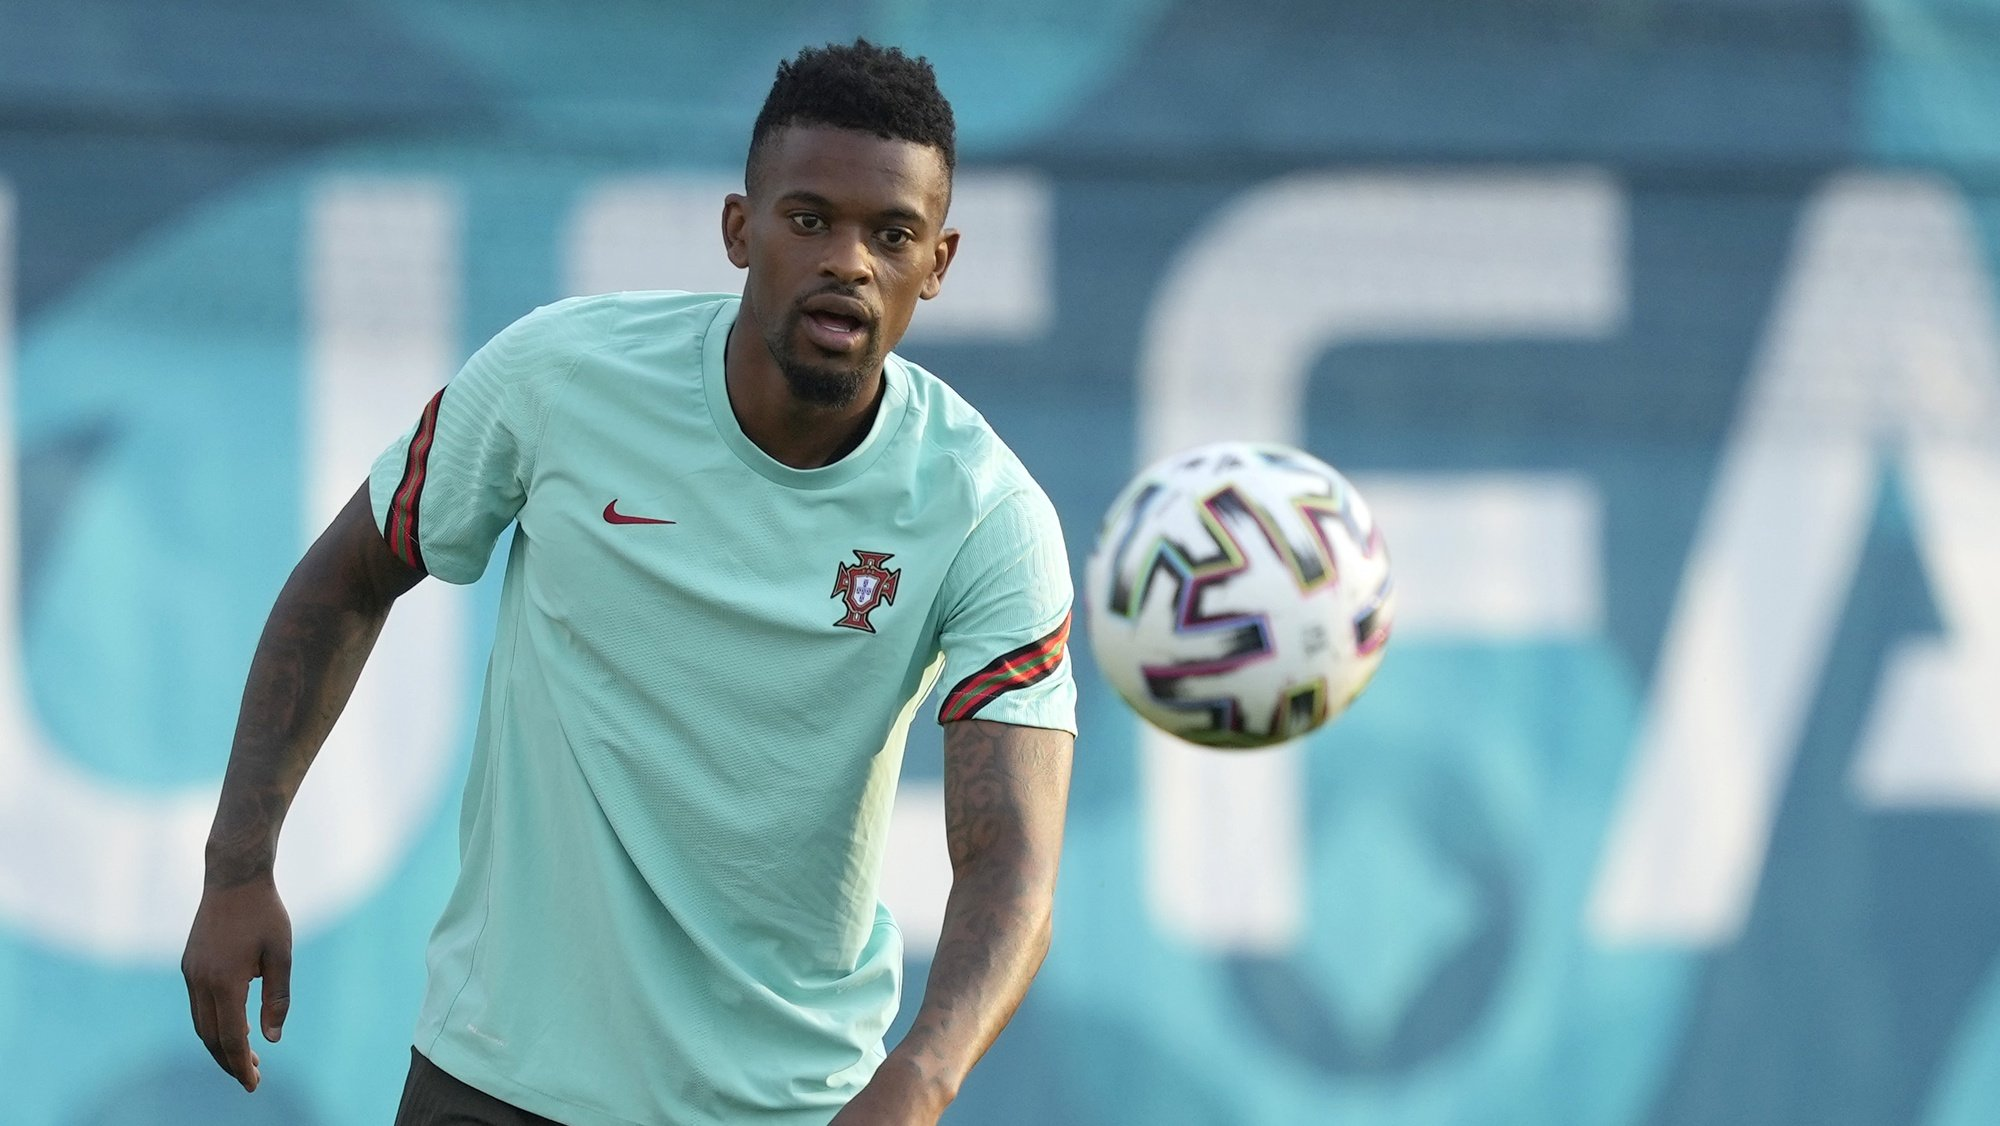 Portugal´s national soccer team players Nélson Semedo, during a training session at the Illovszky Rudolf Stadium, Hungay, 22 June 2021. Portugal will face France in their UEFA EURO 2020 group F round soccer match on 23 June 2021. HUGO DELGADO/LUSA